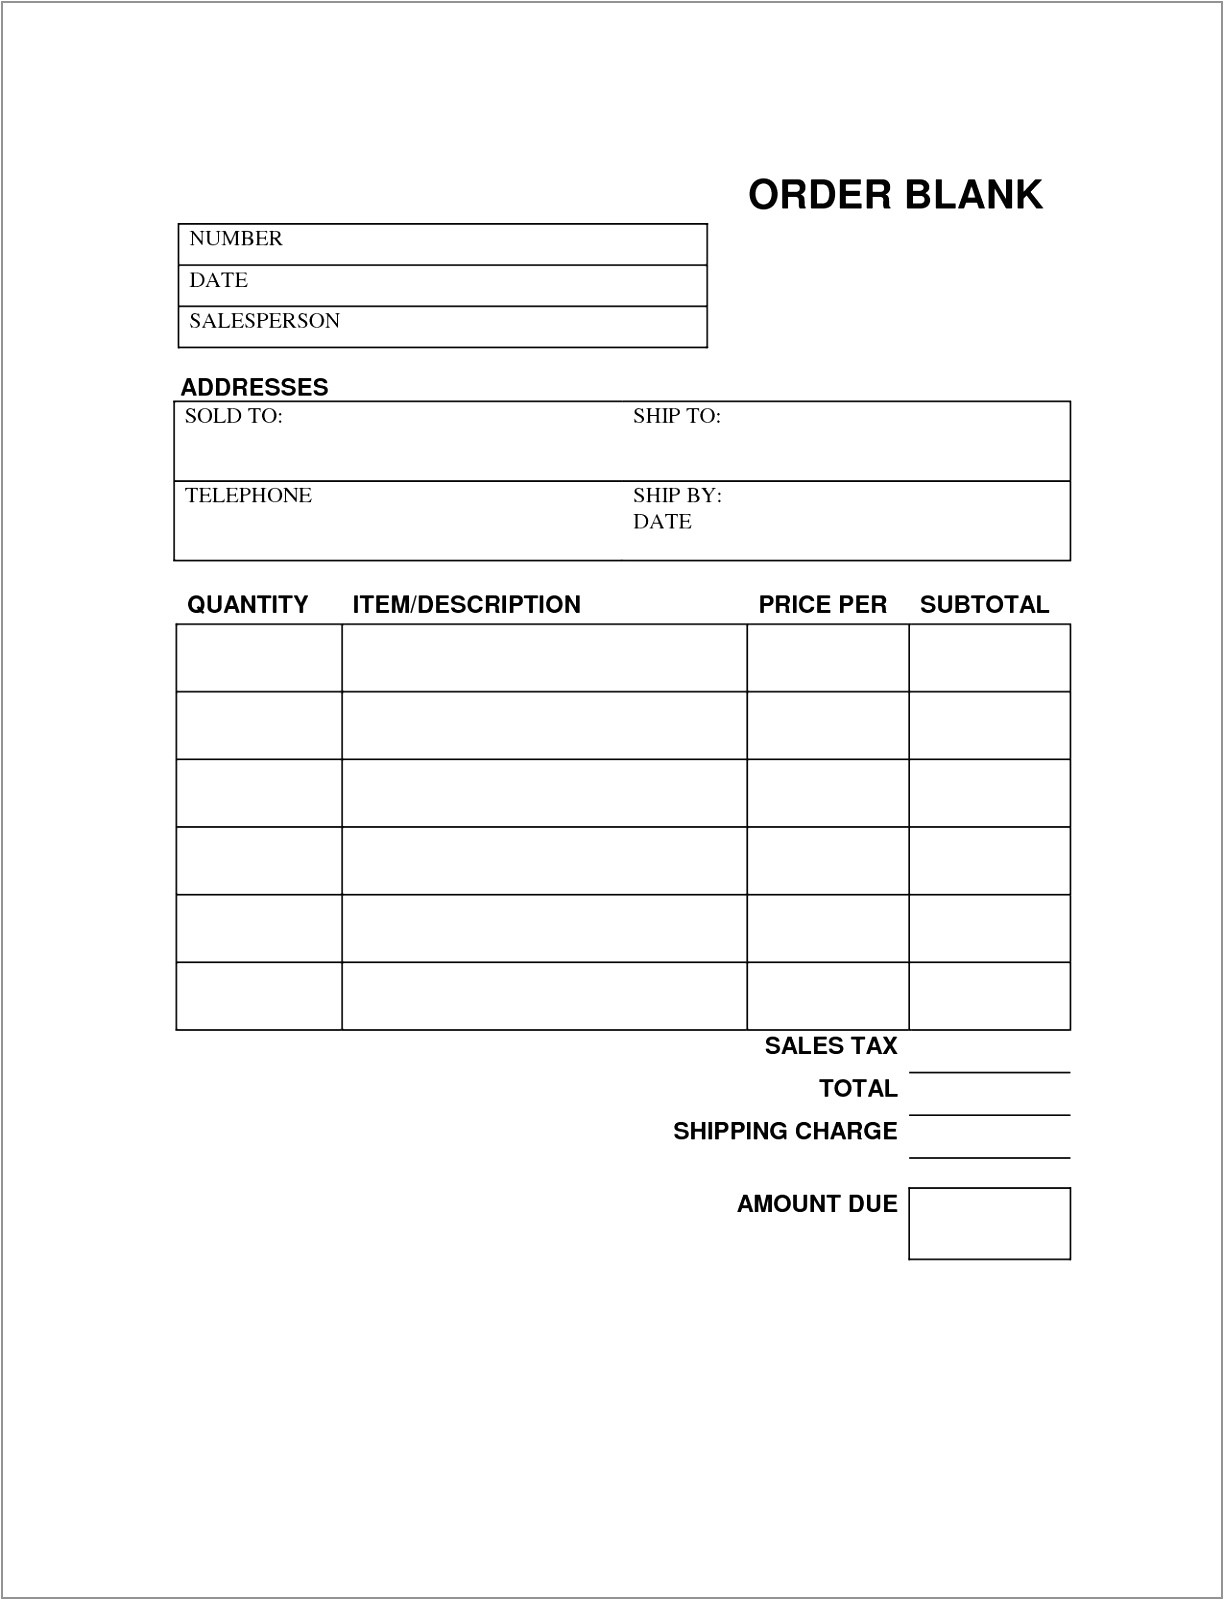 Dsmb Report Template top Result 50 Best Of Blank Dd214 form Template